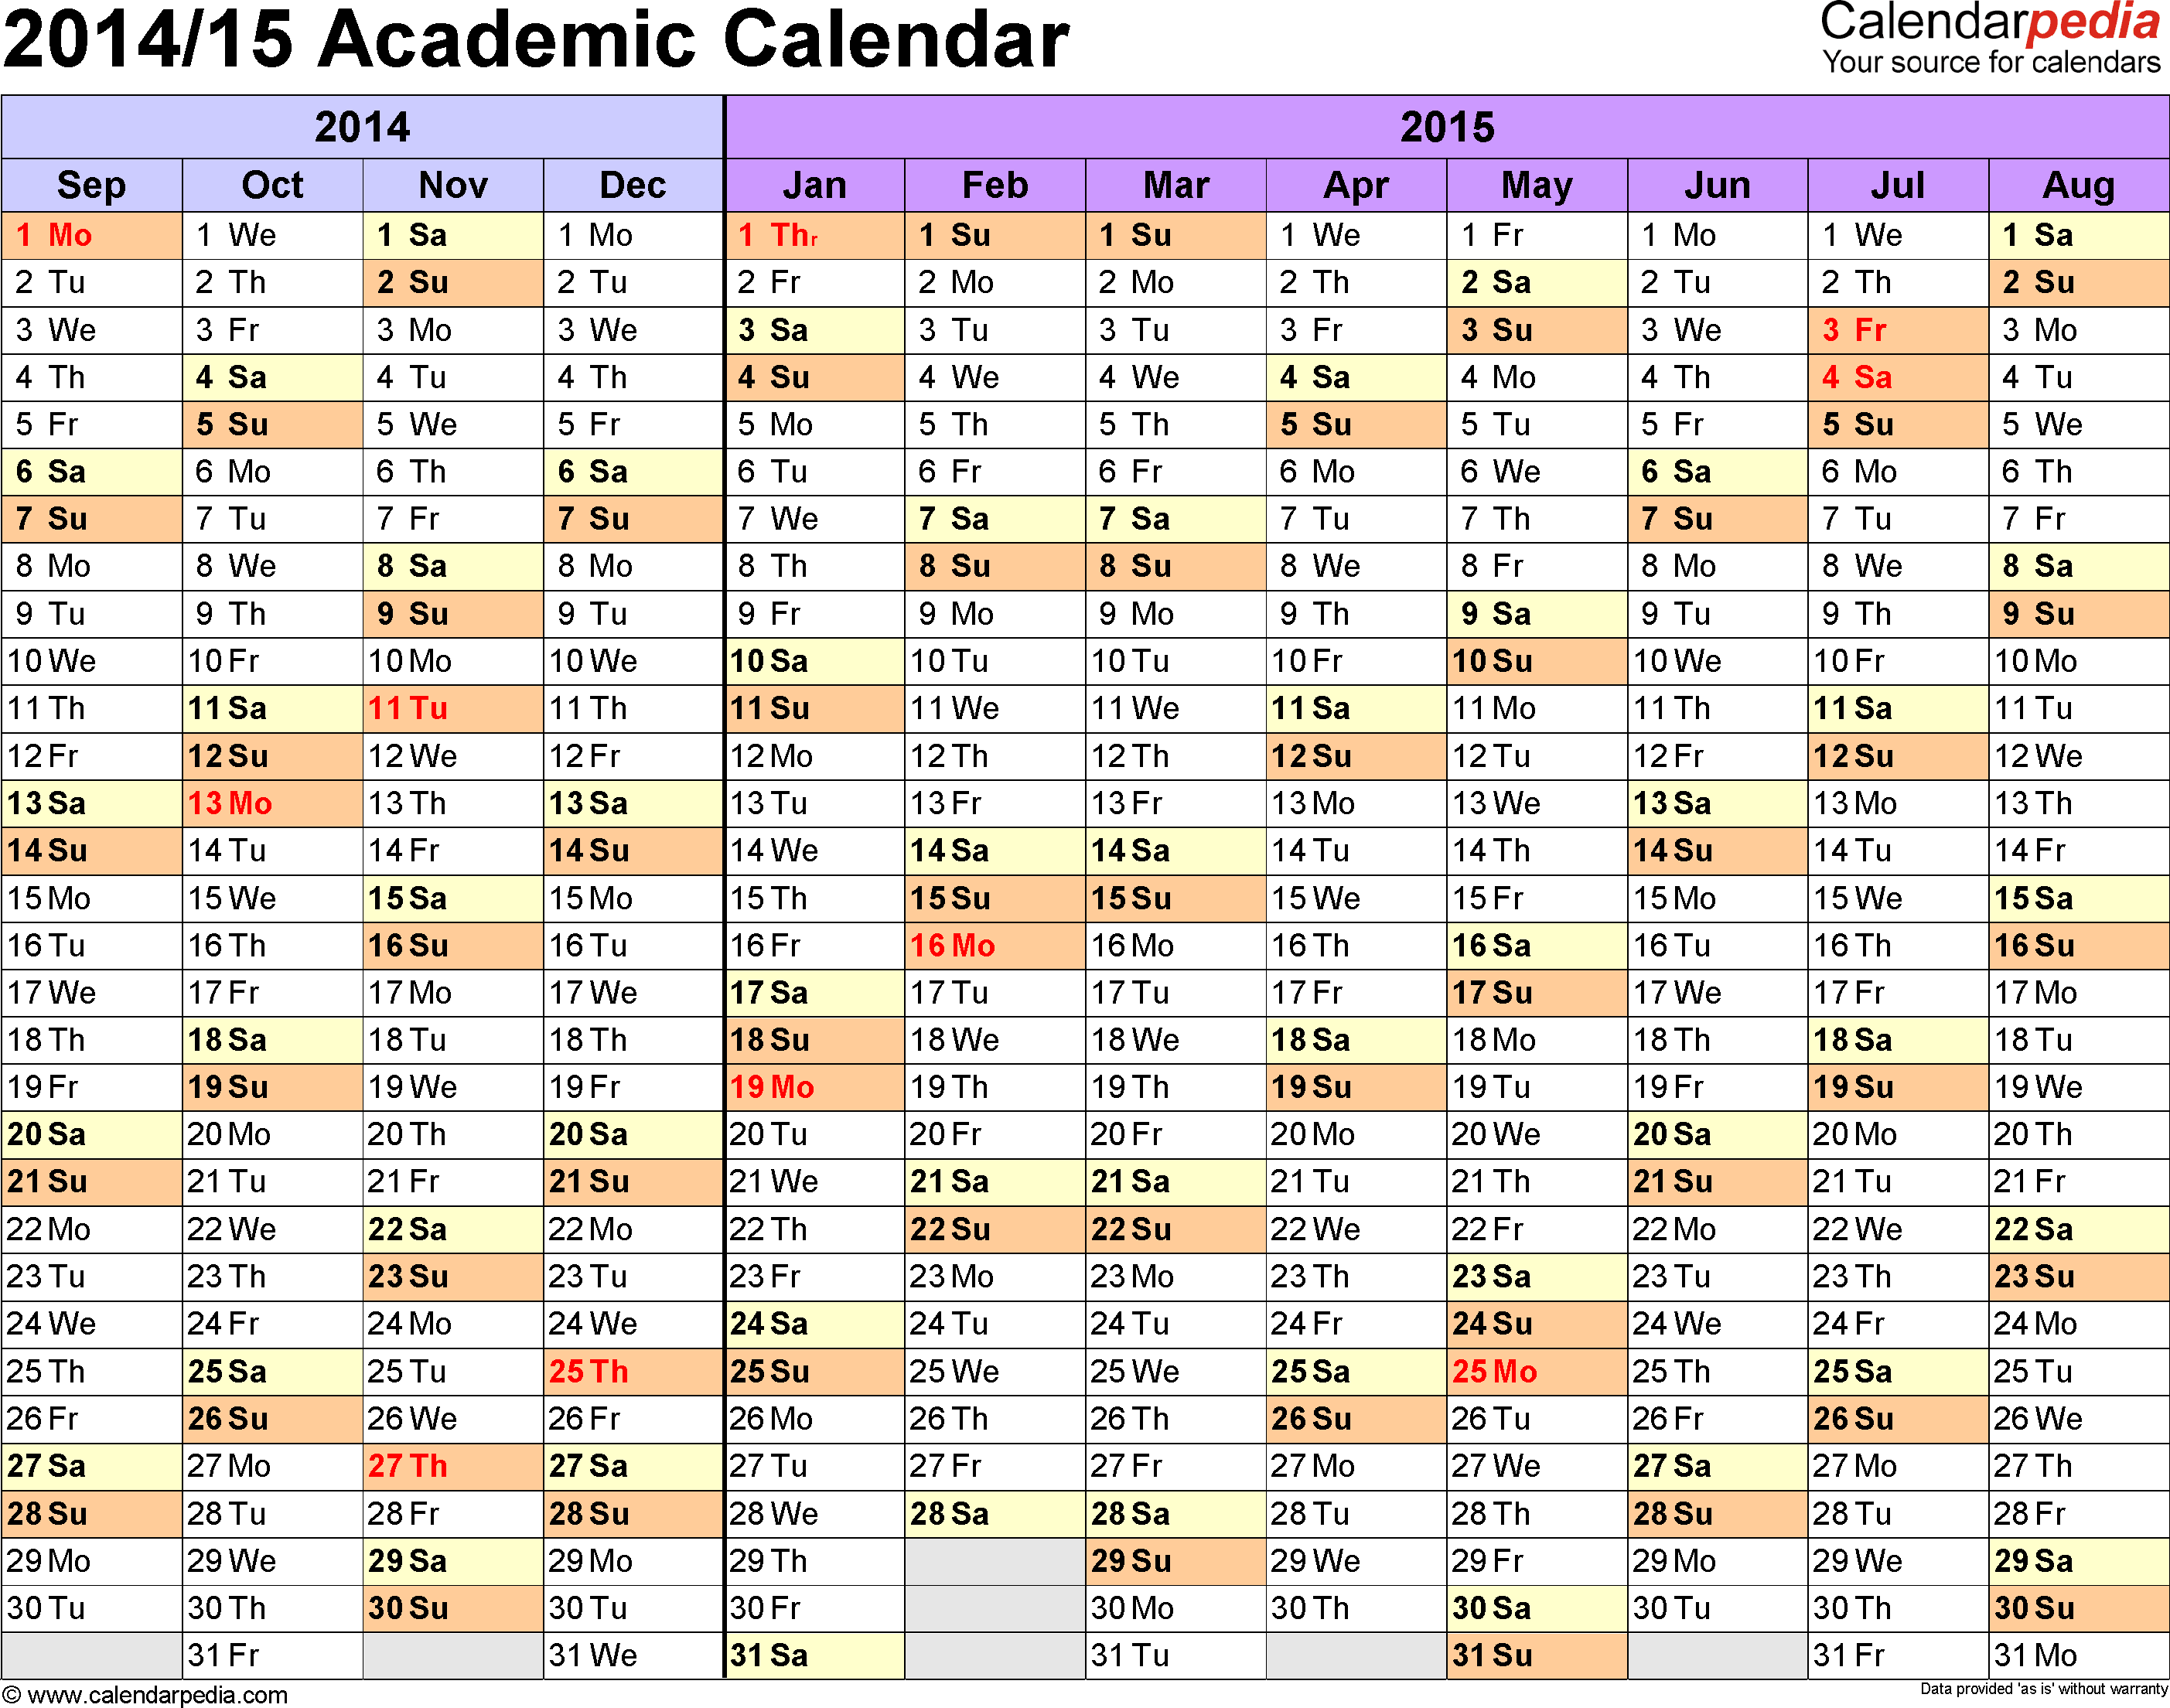 Academic calendars 2014/2015 as free printable Word templates